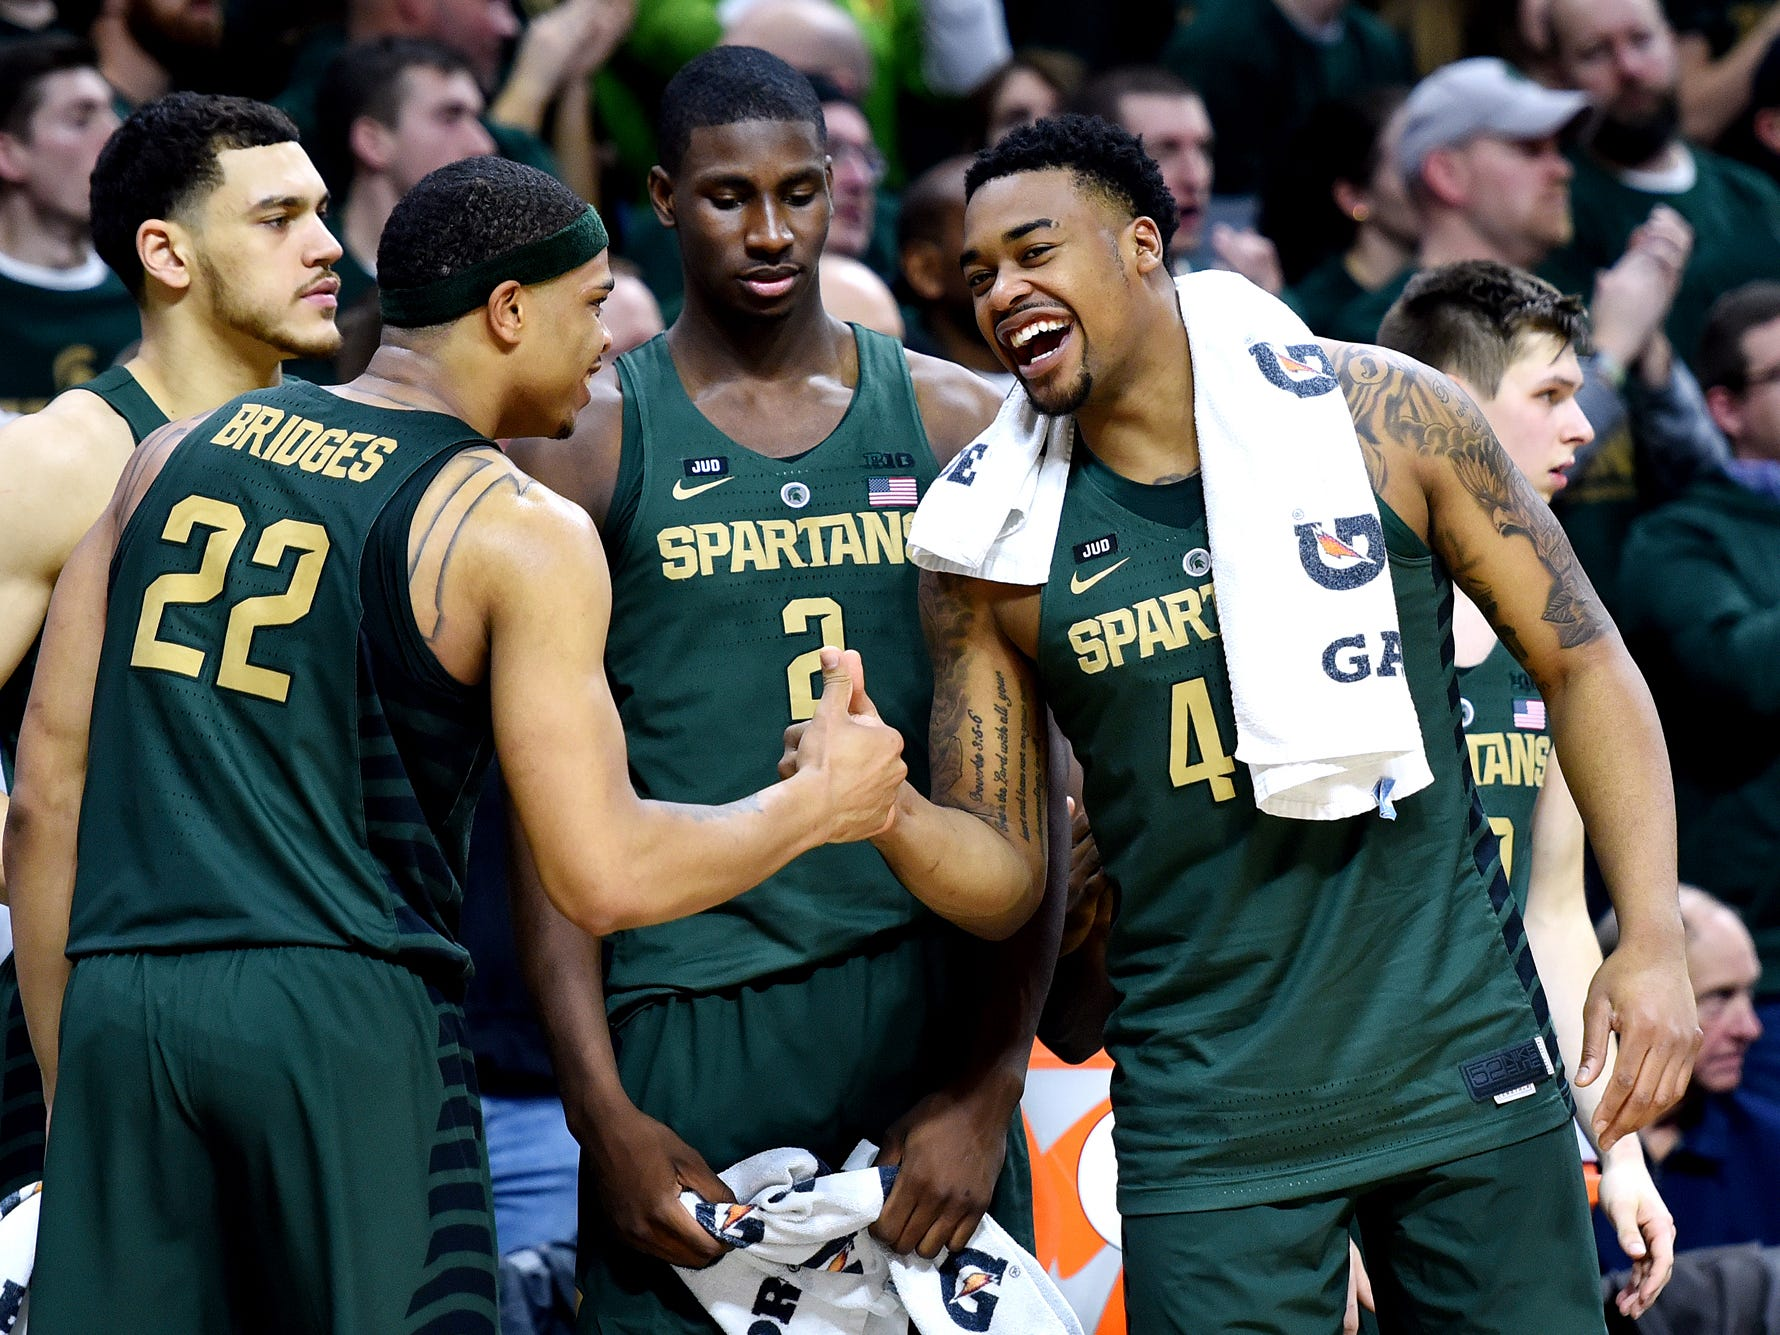 From left, Michigan State's Gavin Schilling, Miles Bridges, Jaren Jackson Jr. and Nick Ward celebrate on the bench during the second half on Thursday, Jan. 4, 2018, at the Breslin Center in East Lansing. The Spartans won 91-61.